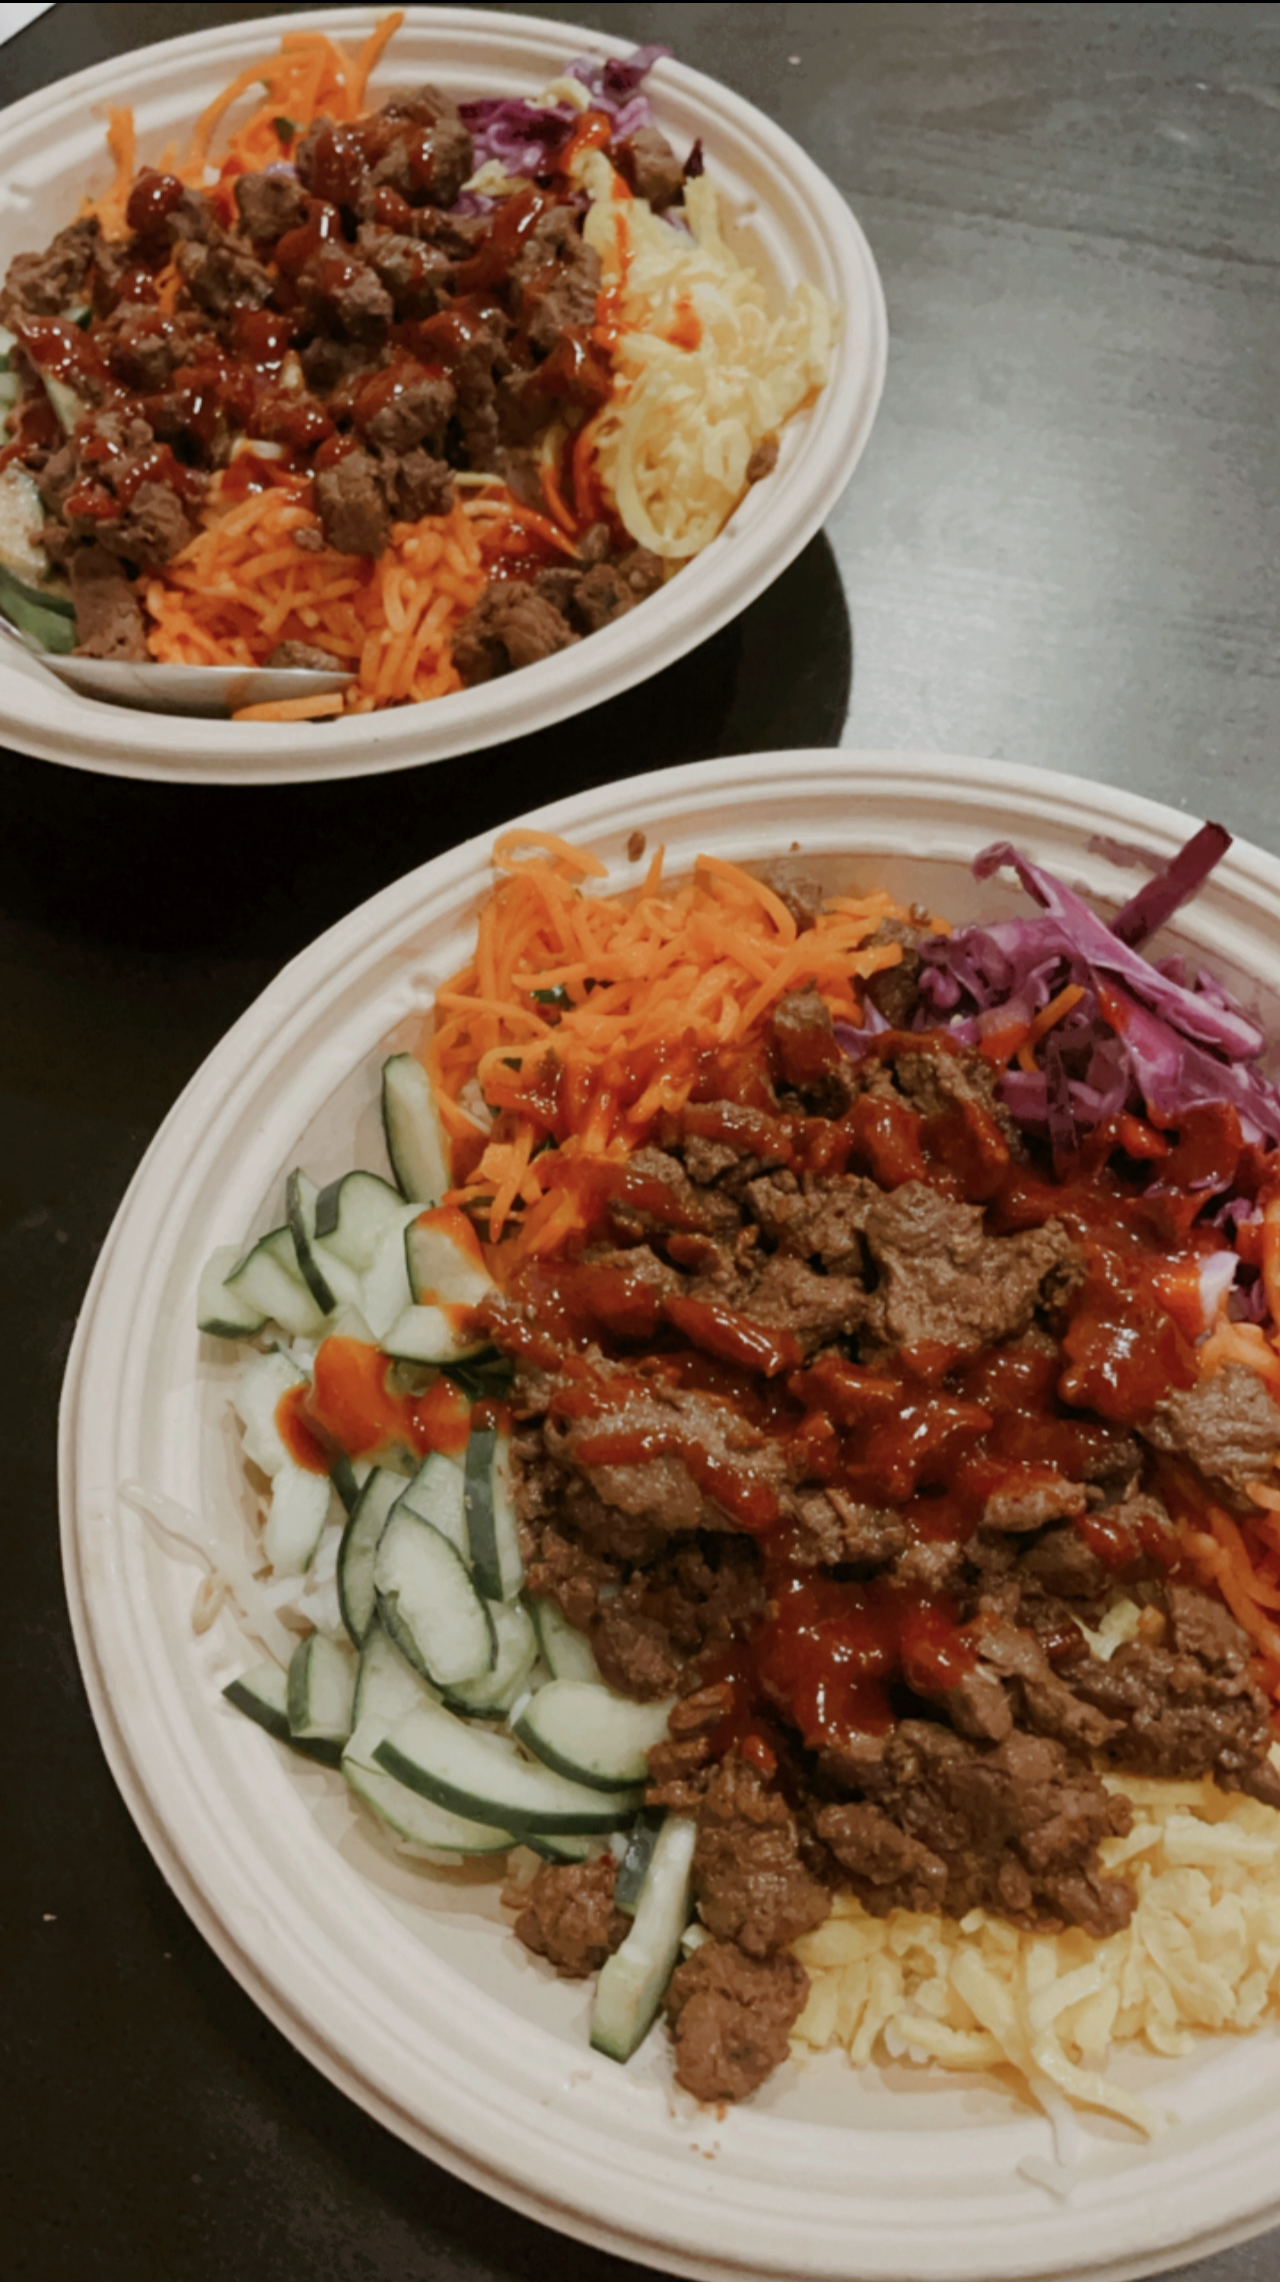 two bowls of bibimbap. they include a white rice base, topped with bean sprouts, red cabbage, cucumber, carrots, egg, kimchi and steak